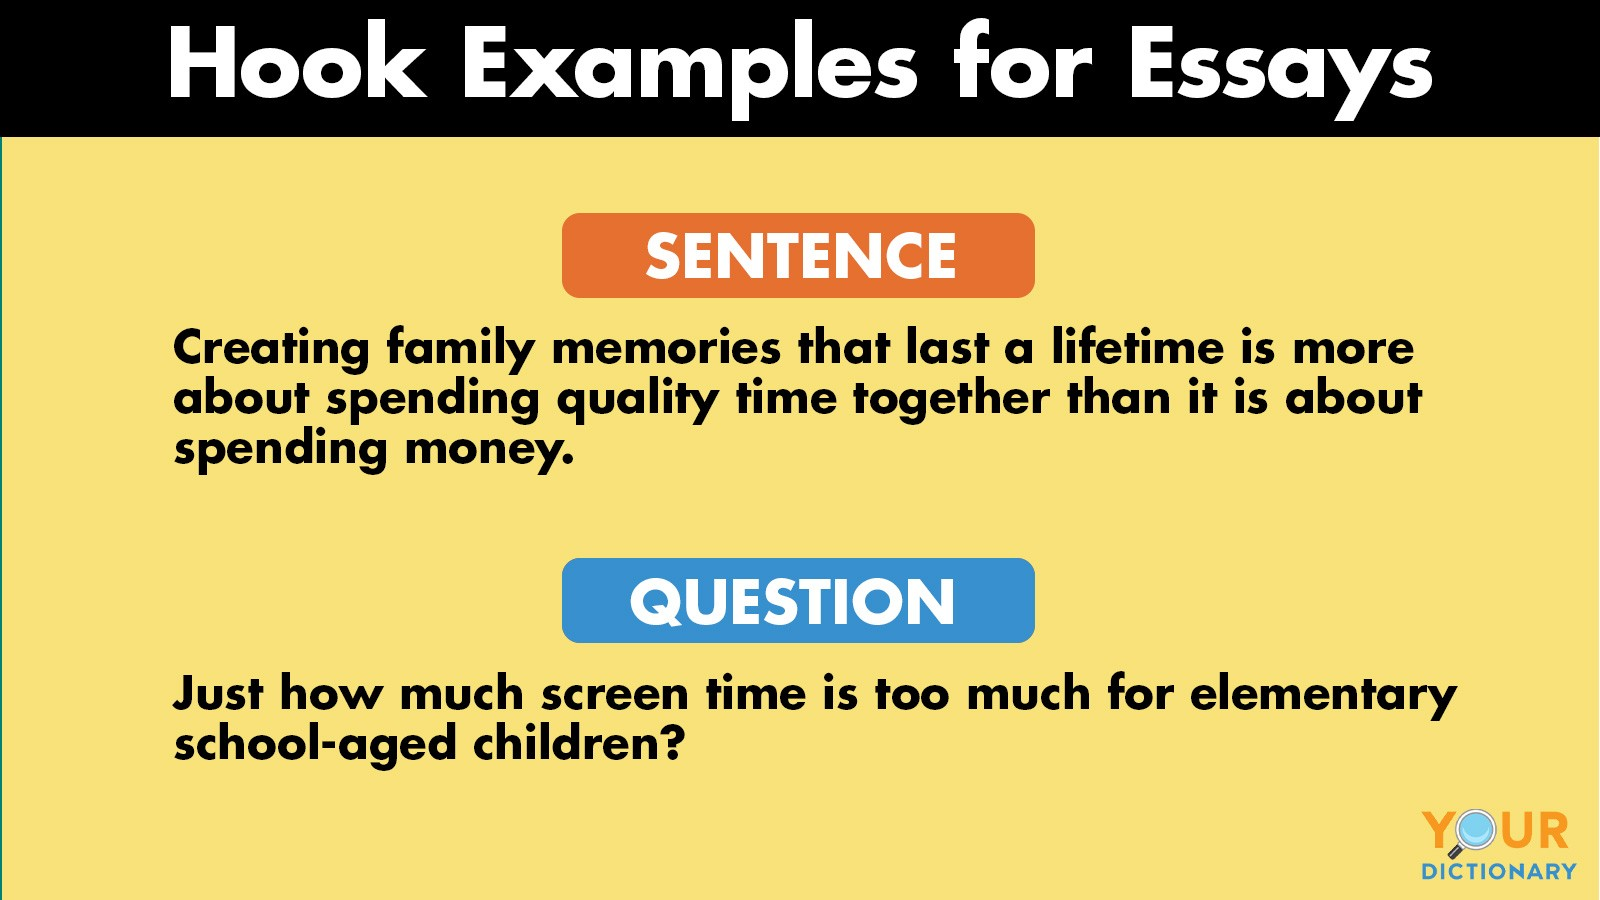 hook examples for essays